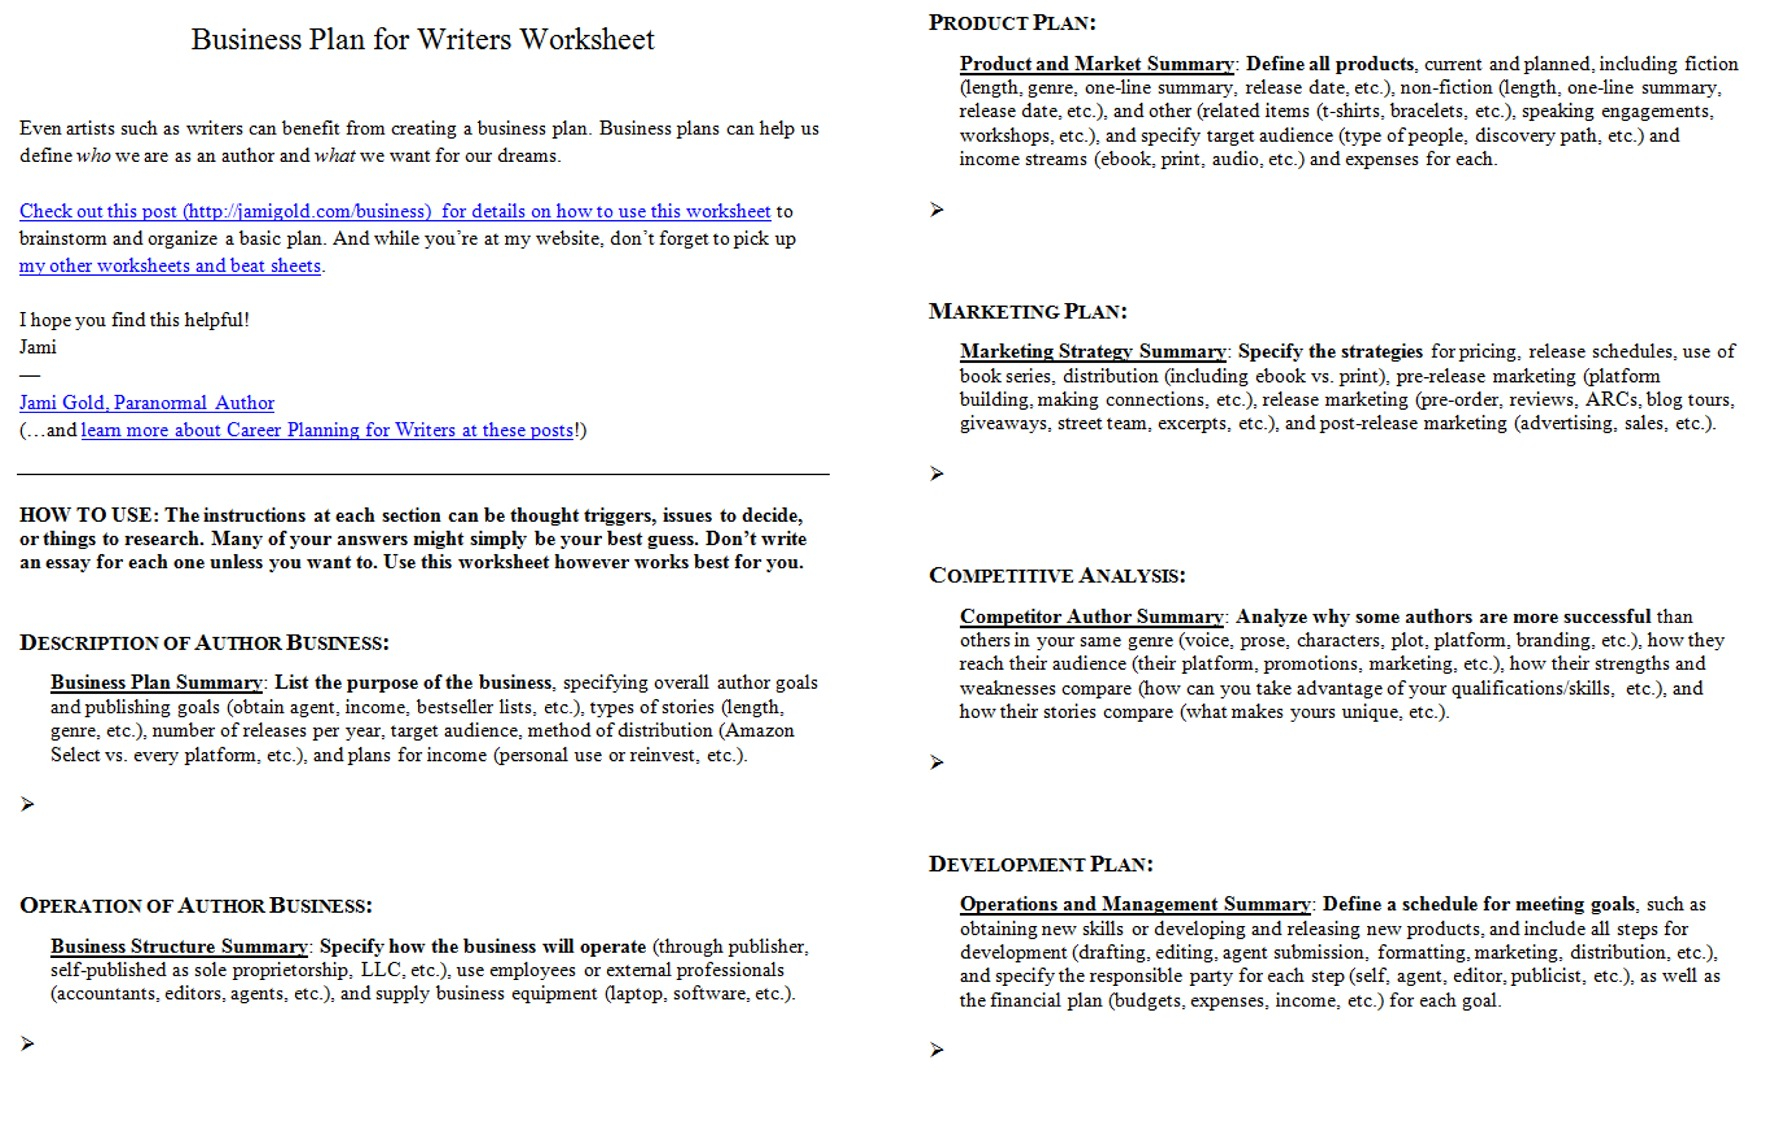 Weirdmailus  Unique Worksheets For Writers  Jami Gold Paranormal Author With Foxy Screen Shot Of Both Pages Of The Business Plan For Writers Worksheet With Extraordinary Perimeter Of Irregular Polygons Worksheet Also  Frame Math Worksheets In Addition Number Search Worksheet And Usmc Counseling Worksheet Pdf As Well As Glossary Worksheet Additionally Bible Activity Worksheets From Jamigoldcom With Weirdmailus  Foxy Worksheets For Writers  Jami Gold Paranormal Author With Extraordinary Screen Shot Of Both Pages Of The Business Plan For Writers Worksheet And Unique Perimeter Of Irregular Polygons Worksheet Also  Frame Math Worksheets In Addition Number Search Worksheet From Jamigoldcom